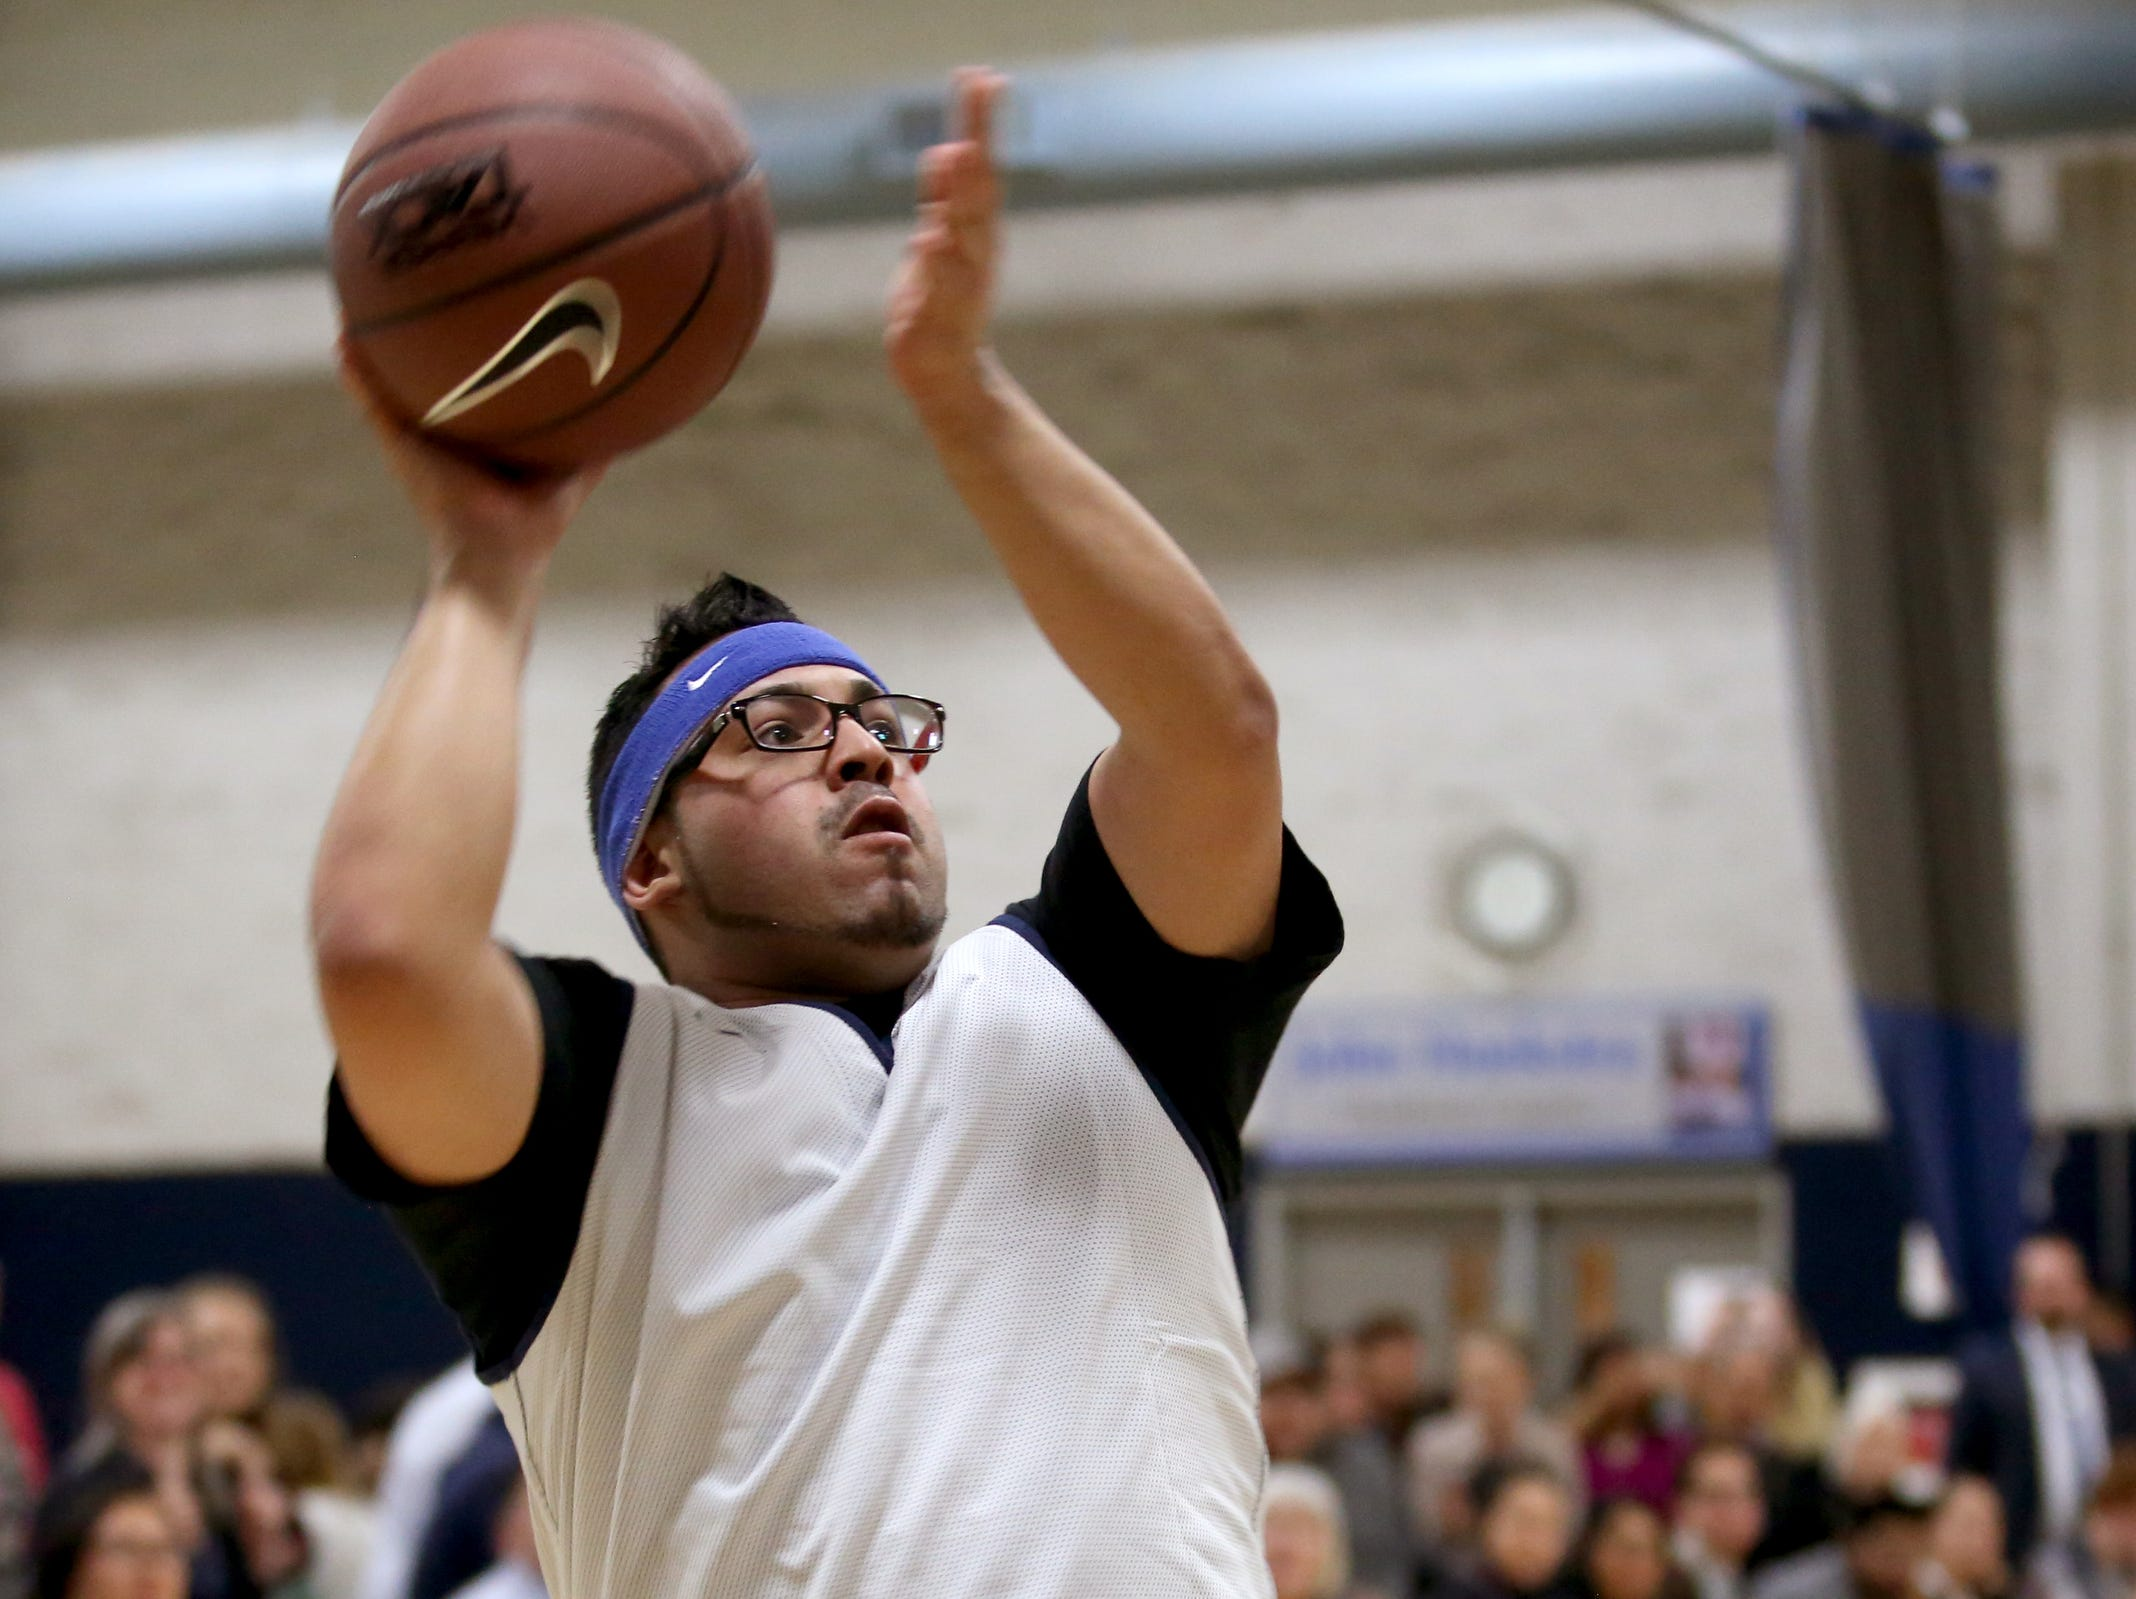 Rep. Diego Hernandez takes a shot in the second annual House vs. Senate charity basketball tournament at the Boys & Girls Club in Salem on March 13, 2019. The tournament raised more than $10,000 for the Oregon Alliance of Boys & Girls Clubs.